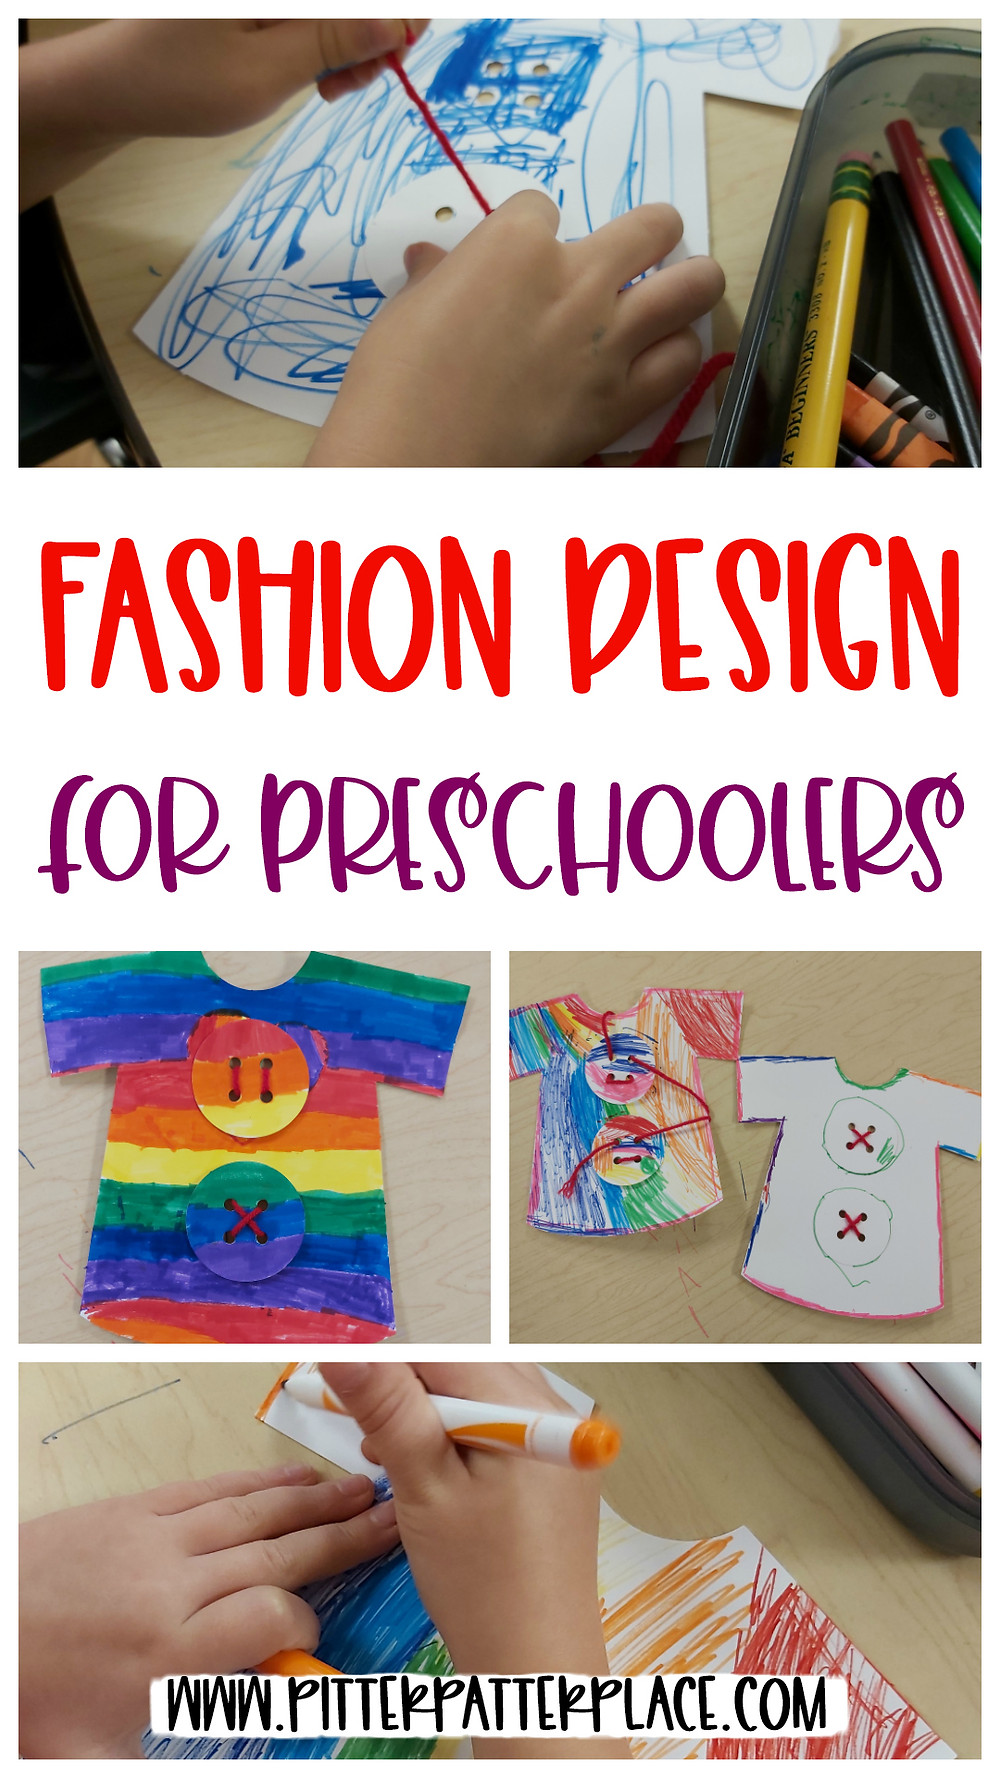 collage of t-shirt crafts with text: Fashion Design for Preschoolers